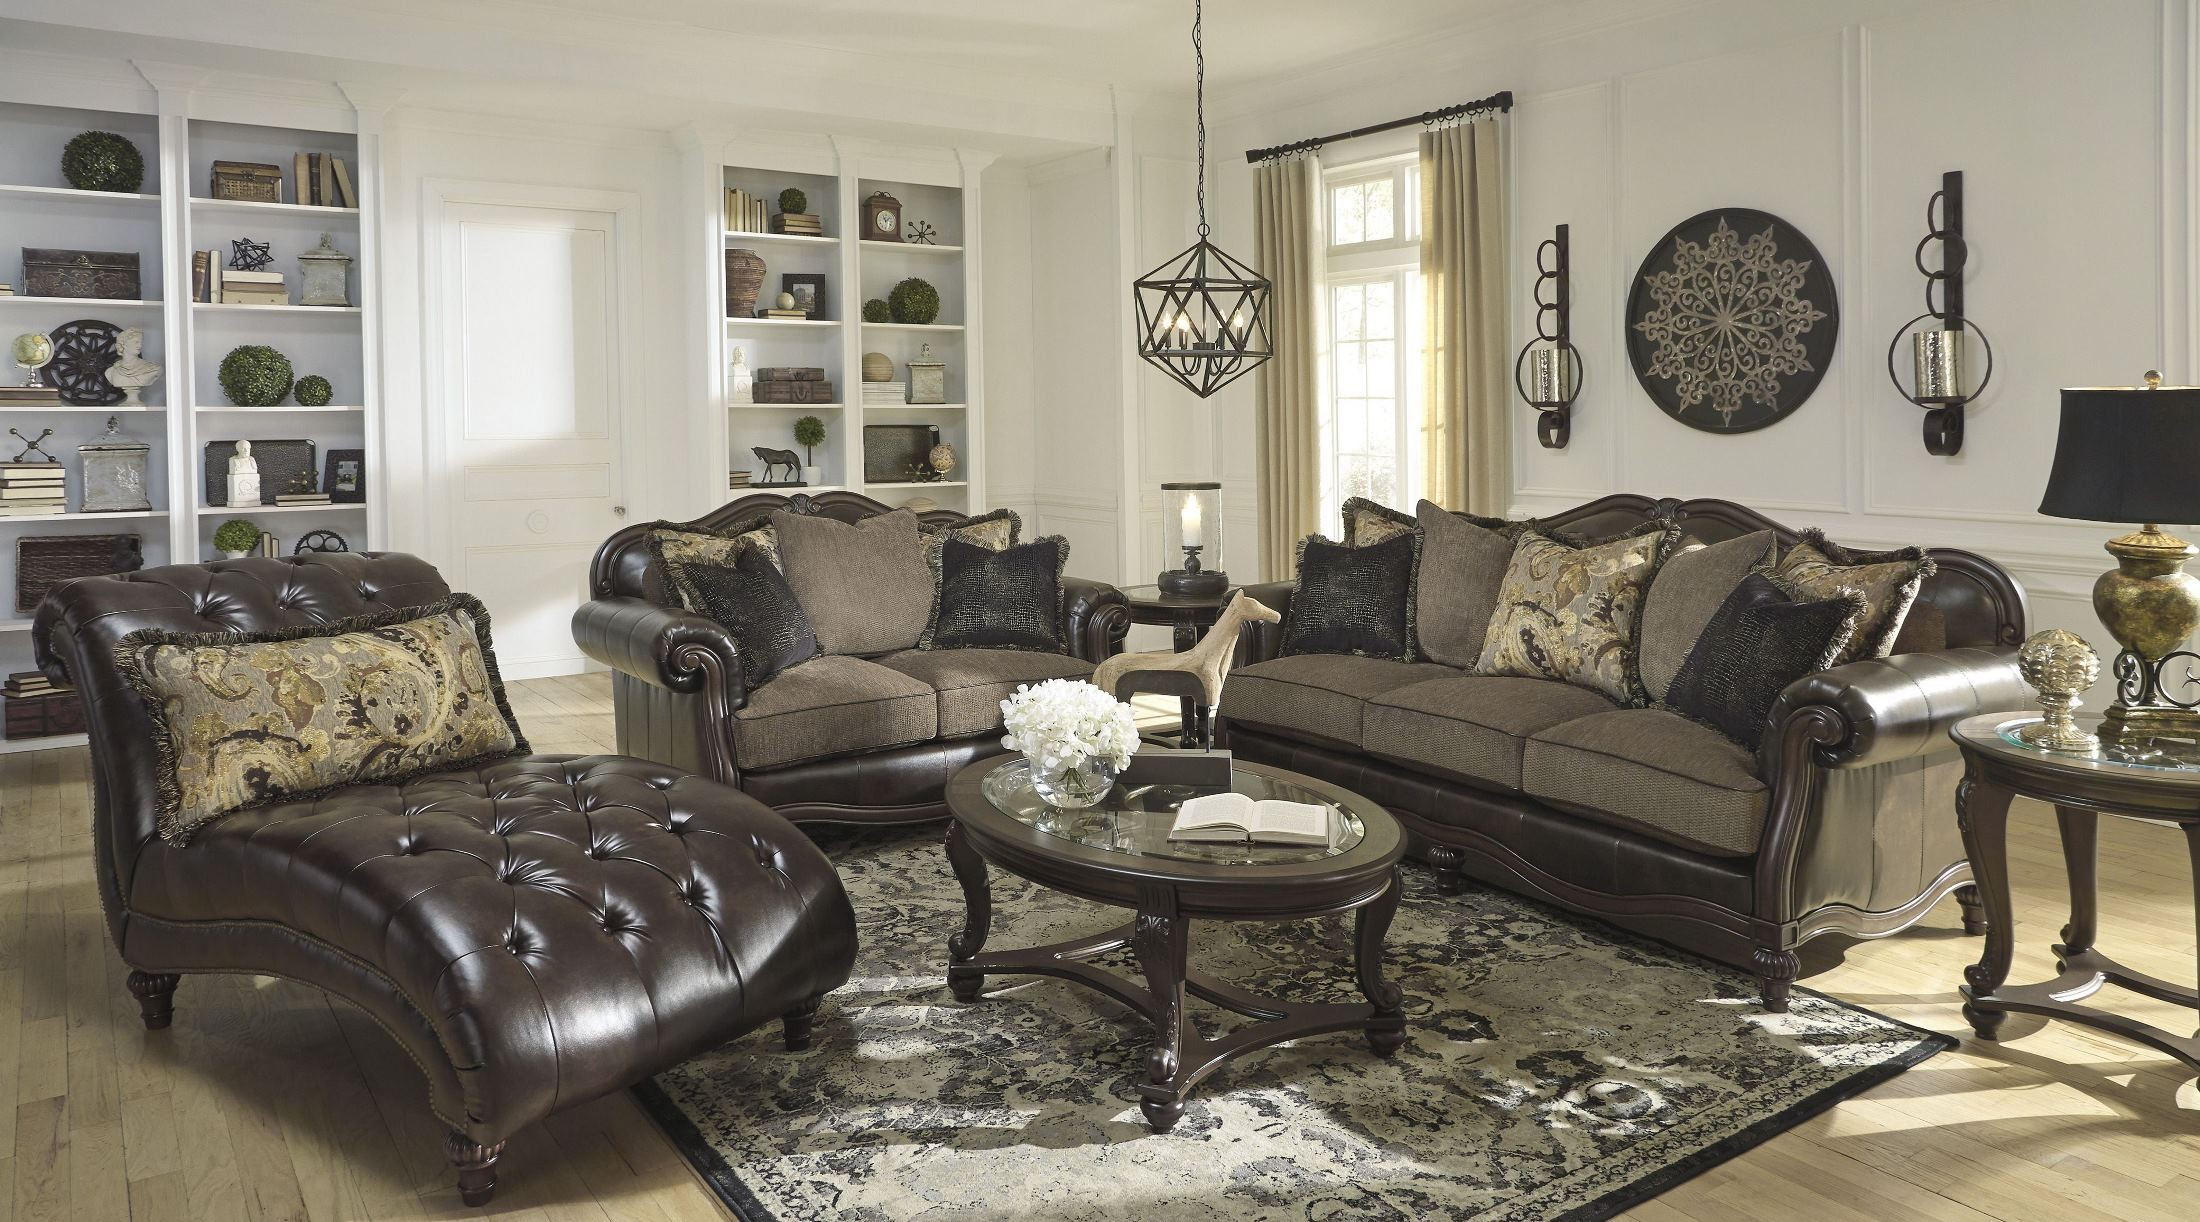 winnsboro durablend vintage living room set from ashley coleman furniture. Black Bedroom Furniture Sets. Home Design Ideas